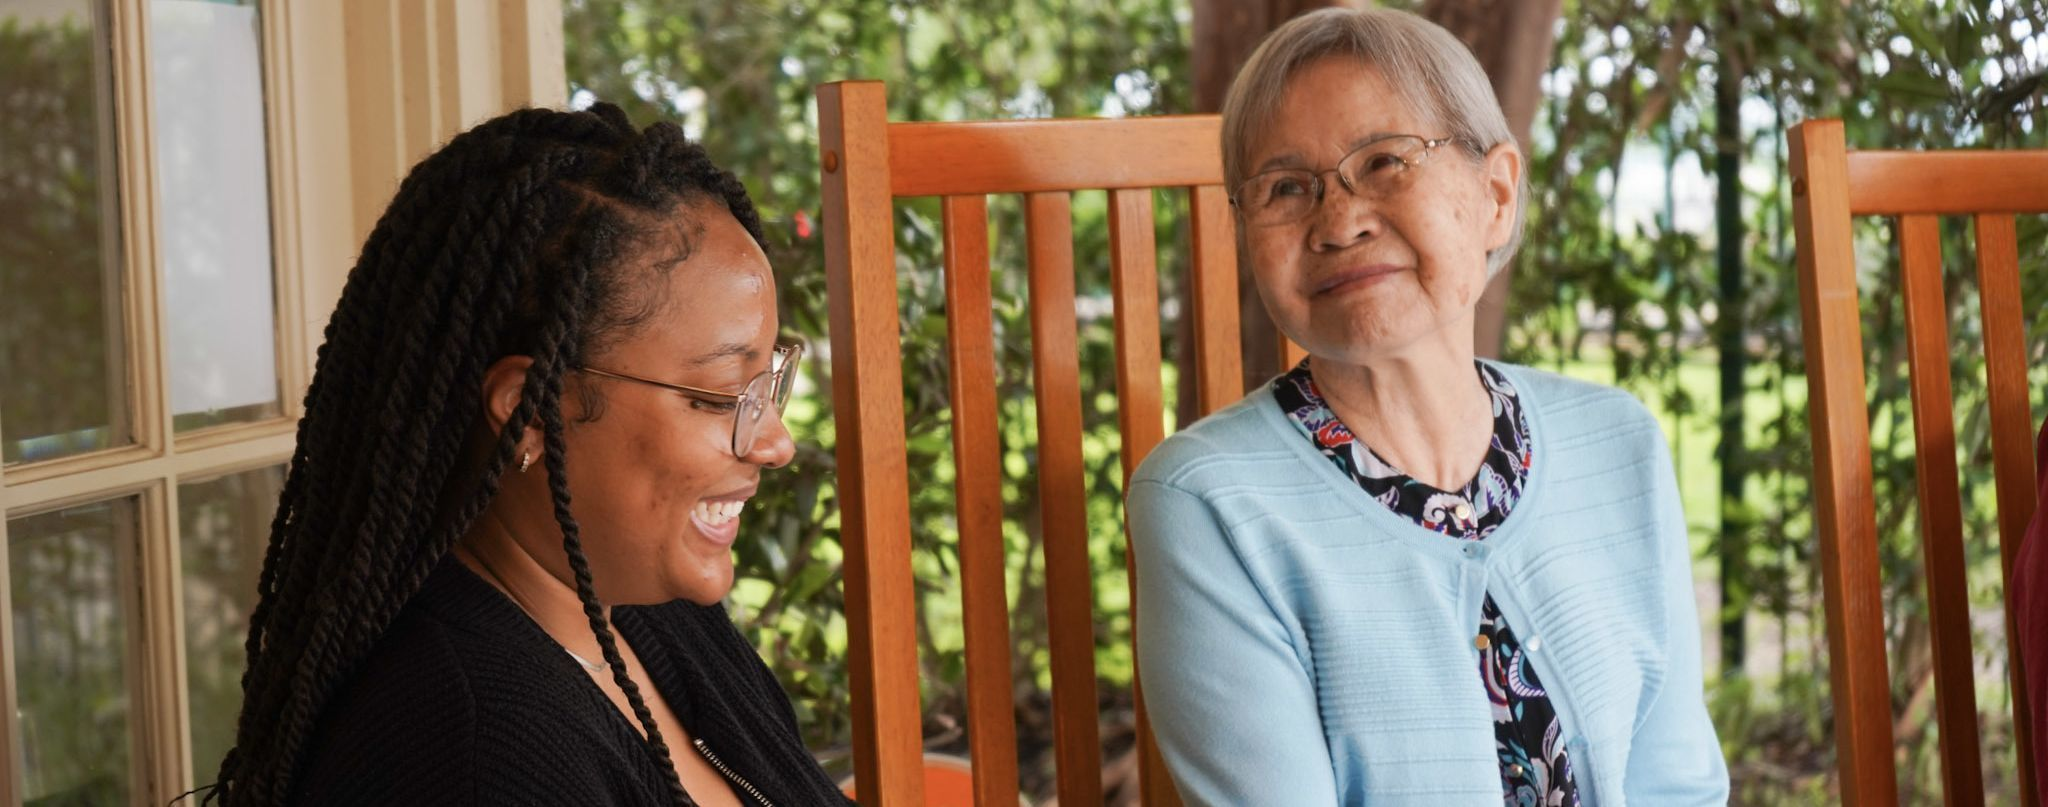 Intern and resident of assisted living